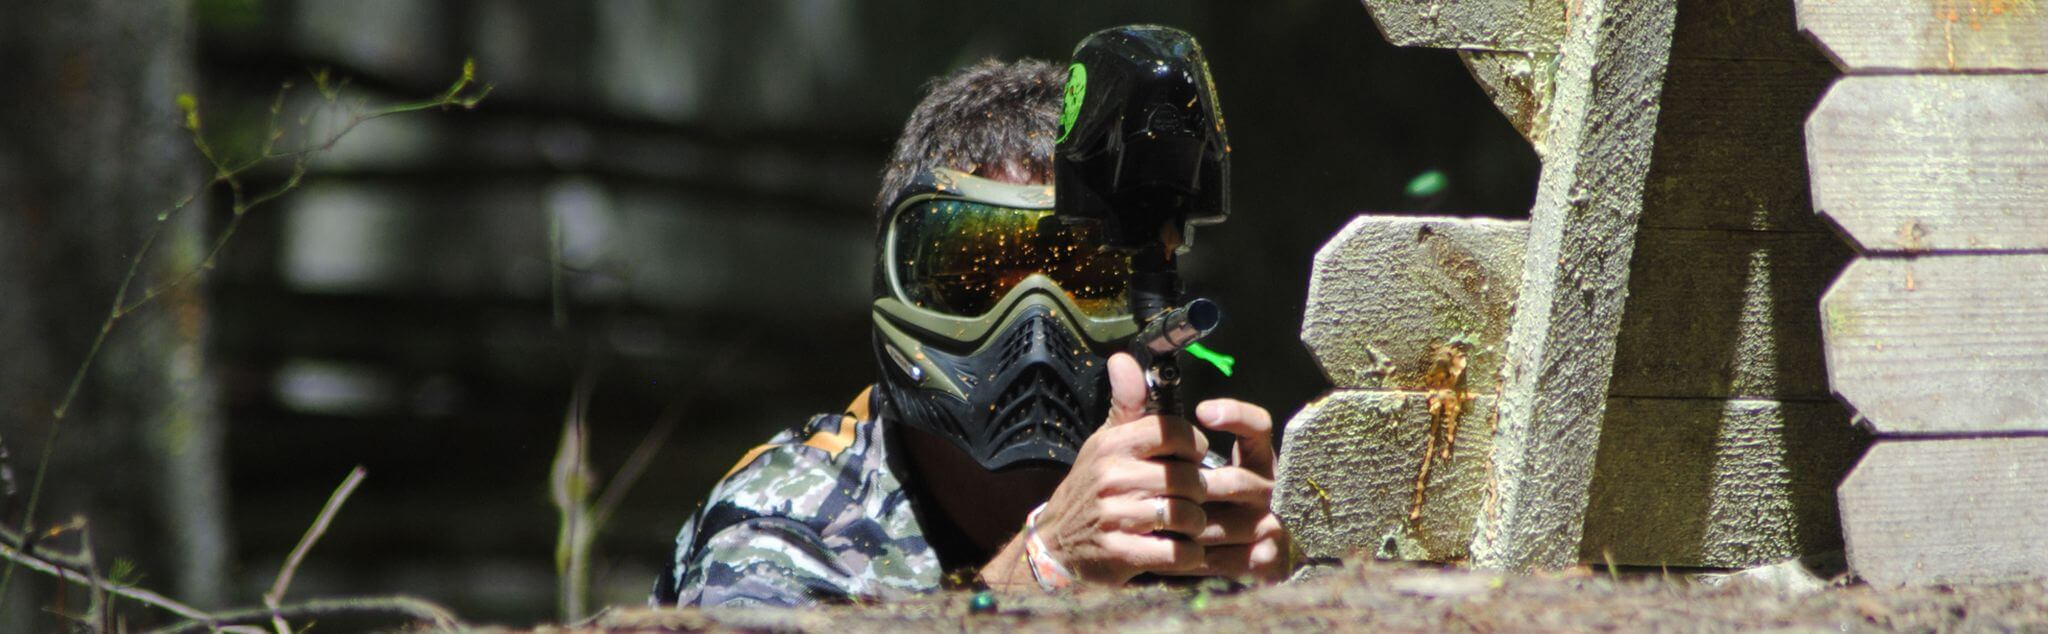 Paintball en Tres Cantos